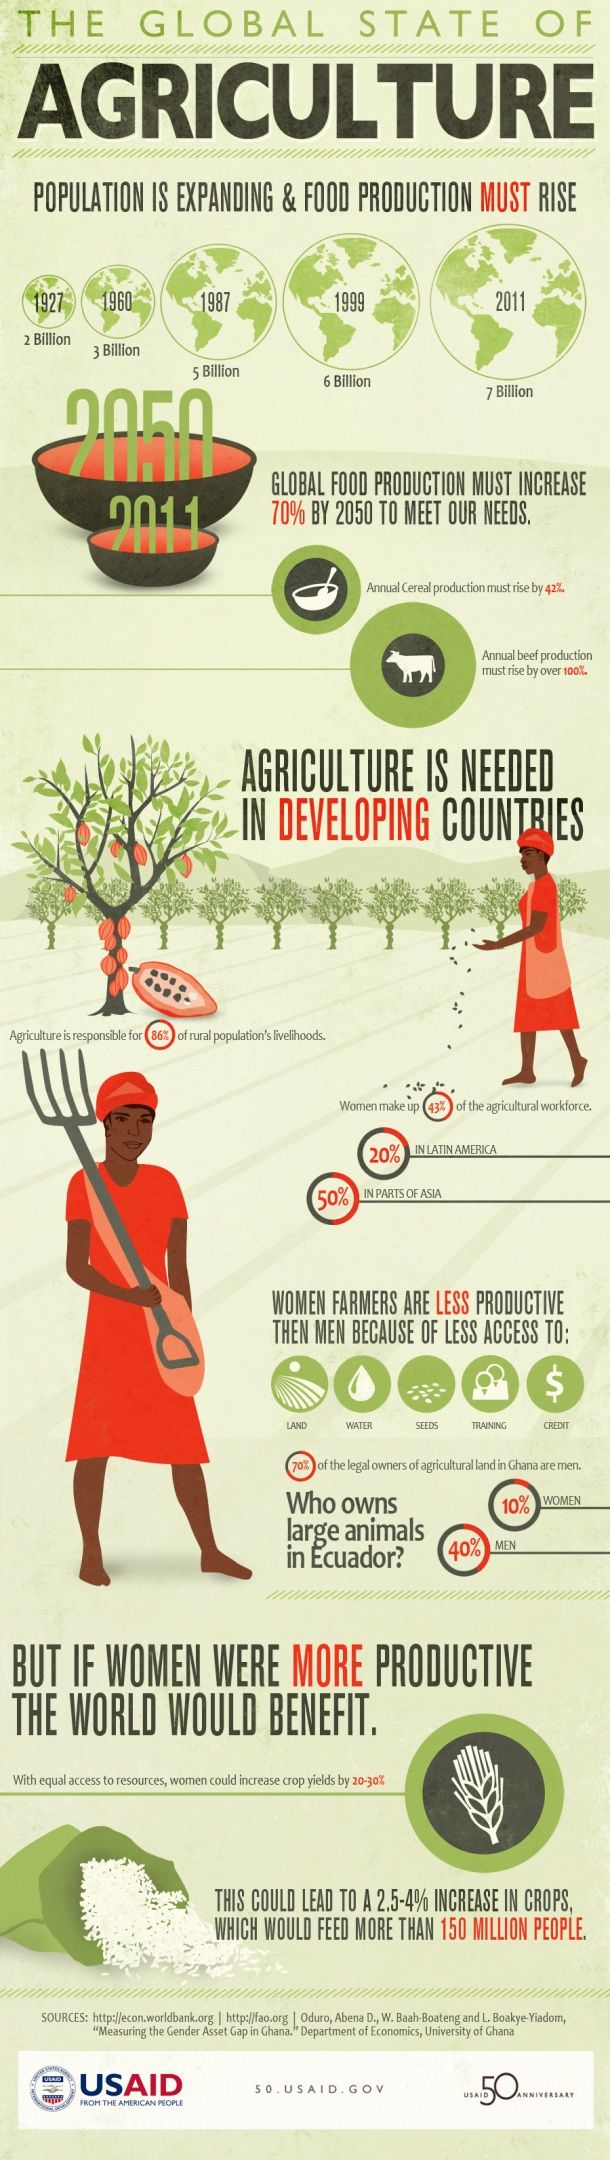 Infographic on the global state of agriculture and the importance of empowering women farmers.